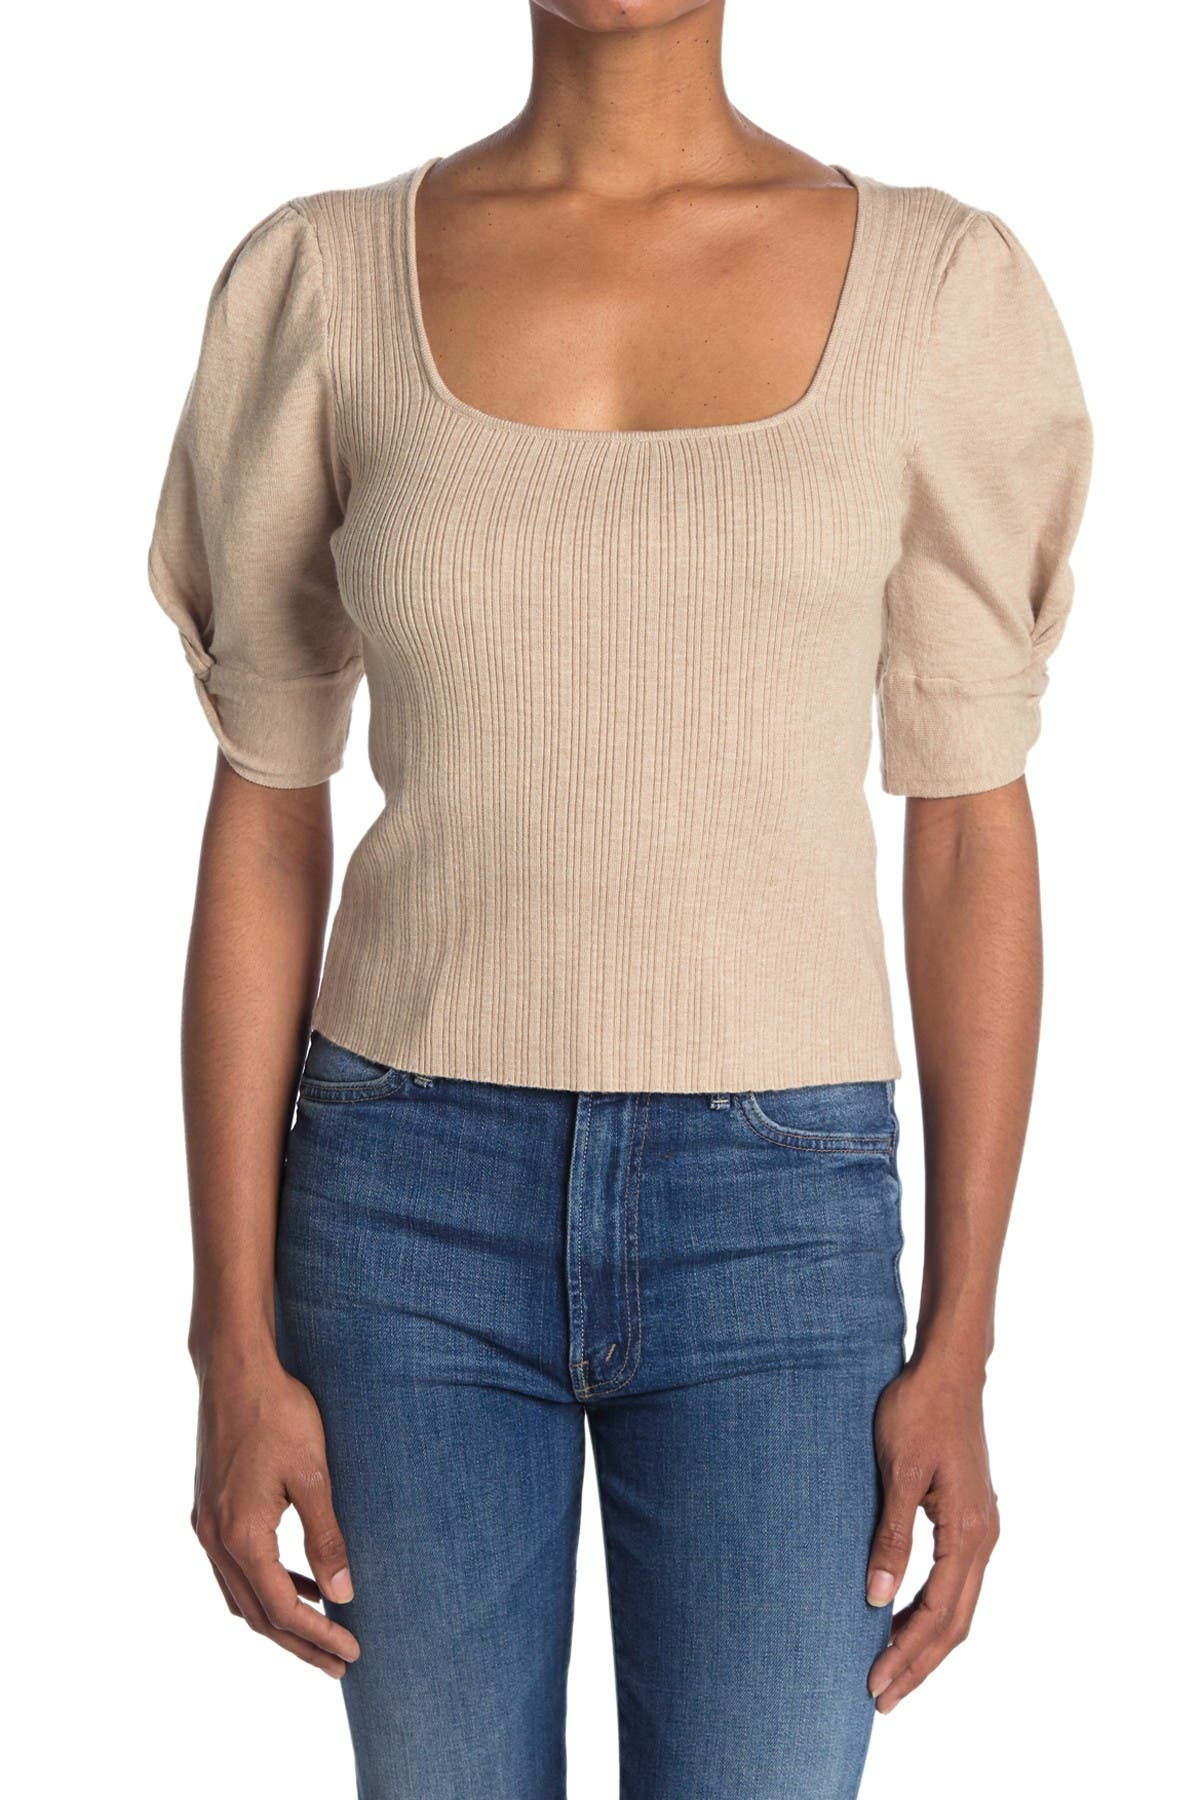 Image of Lush Square Neck Twist Short Sleeve Crop Top